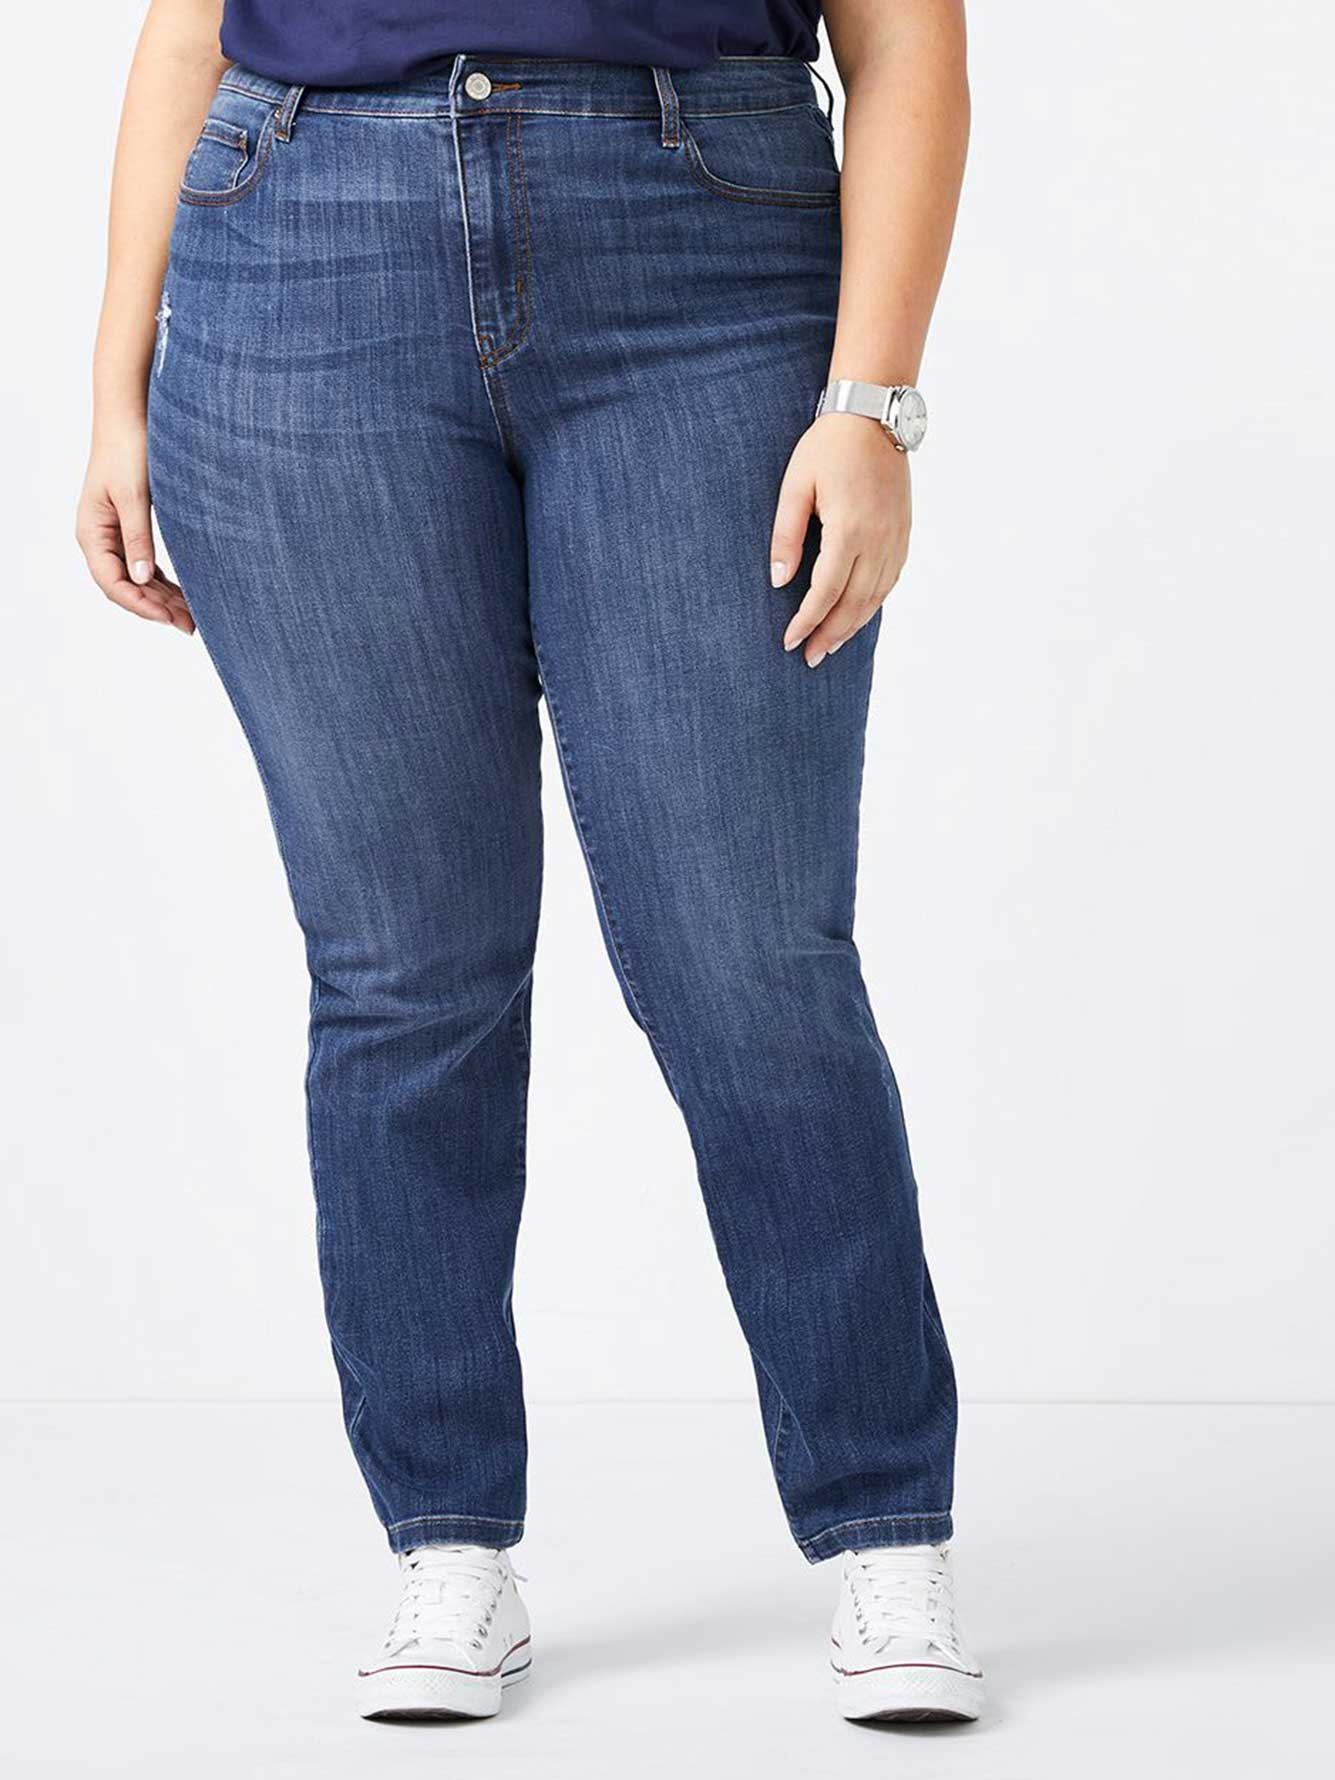 ONLINE ONLY - Tall Slightly Curvy Fit Straight Leg Jean - d/c JEANS